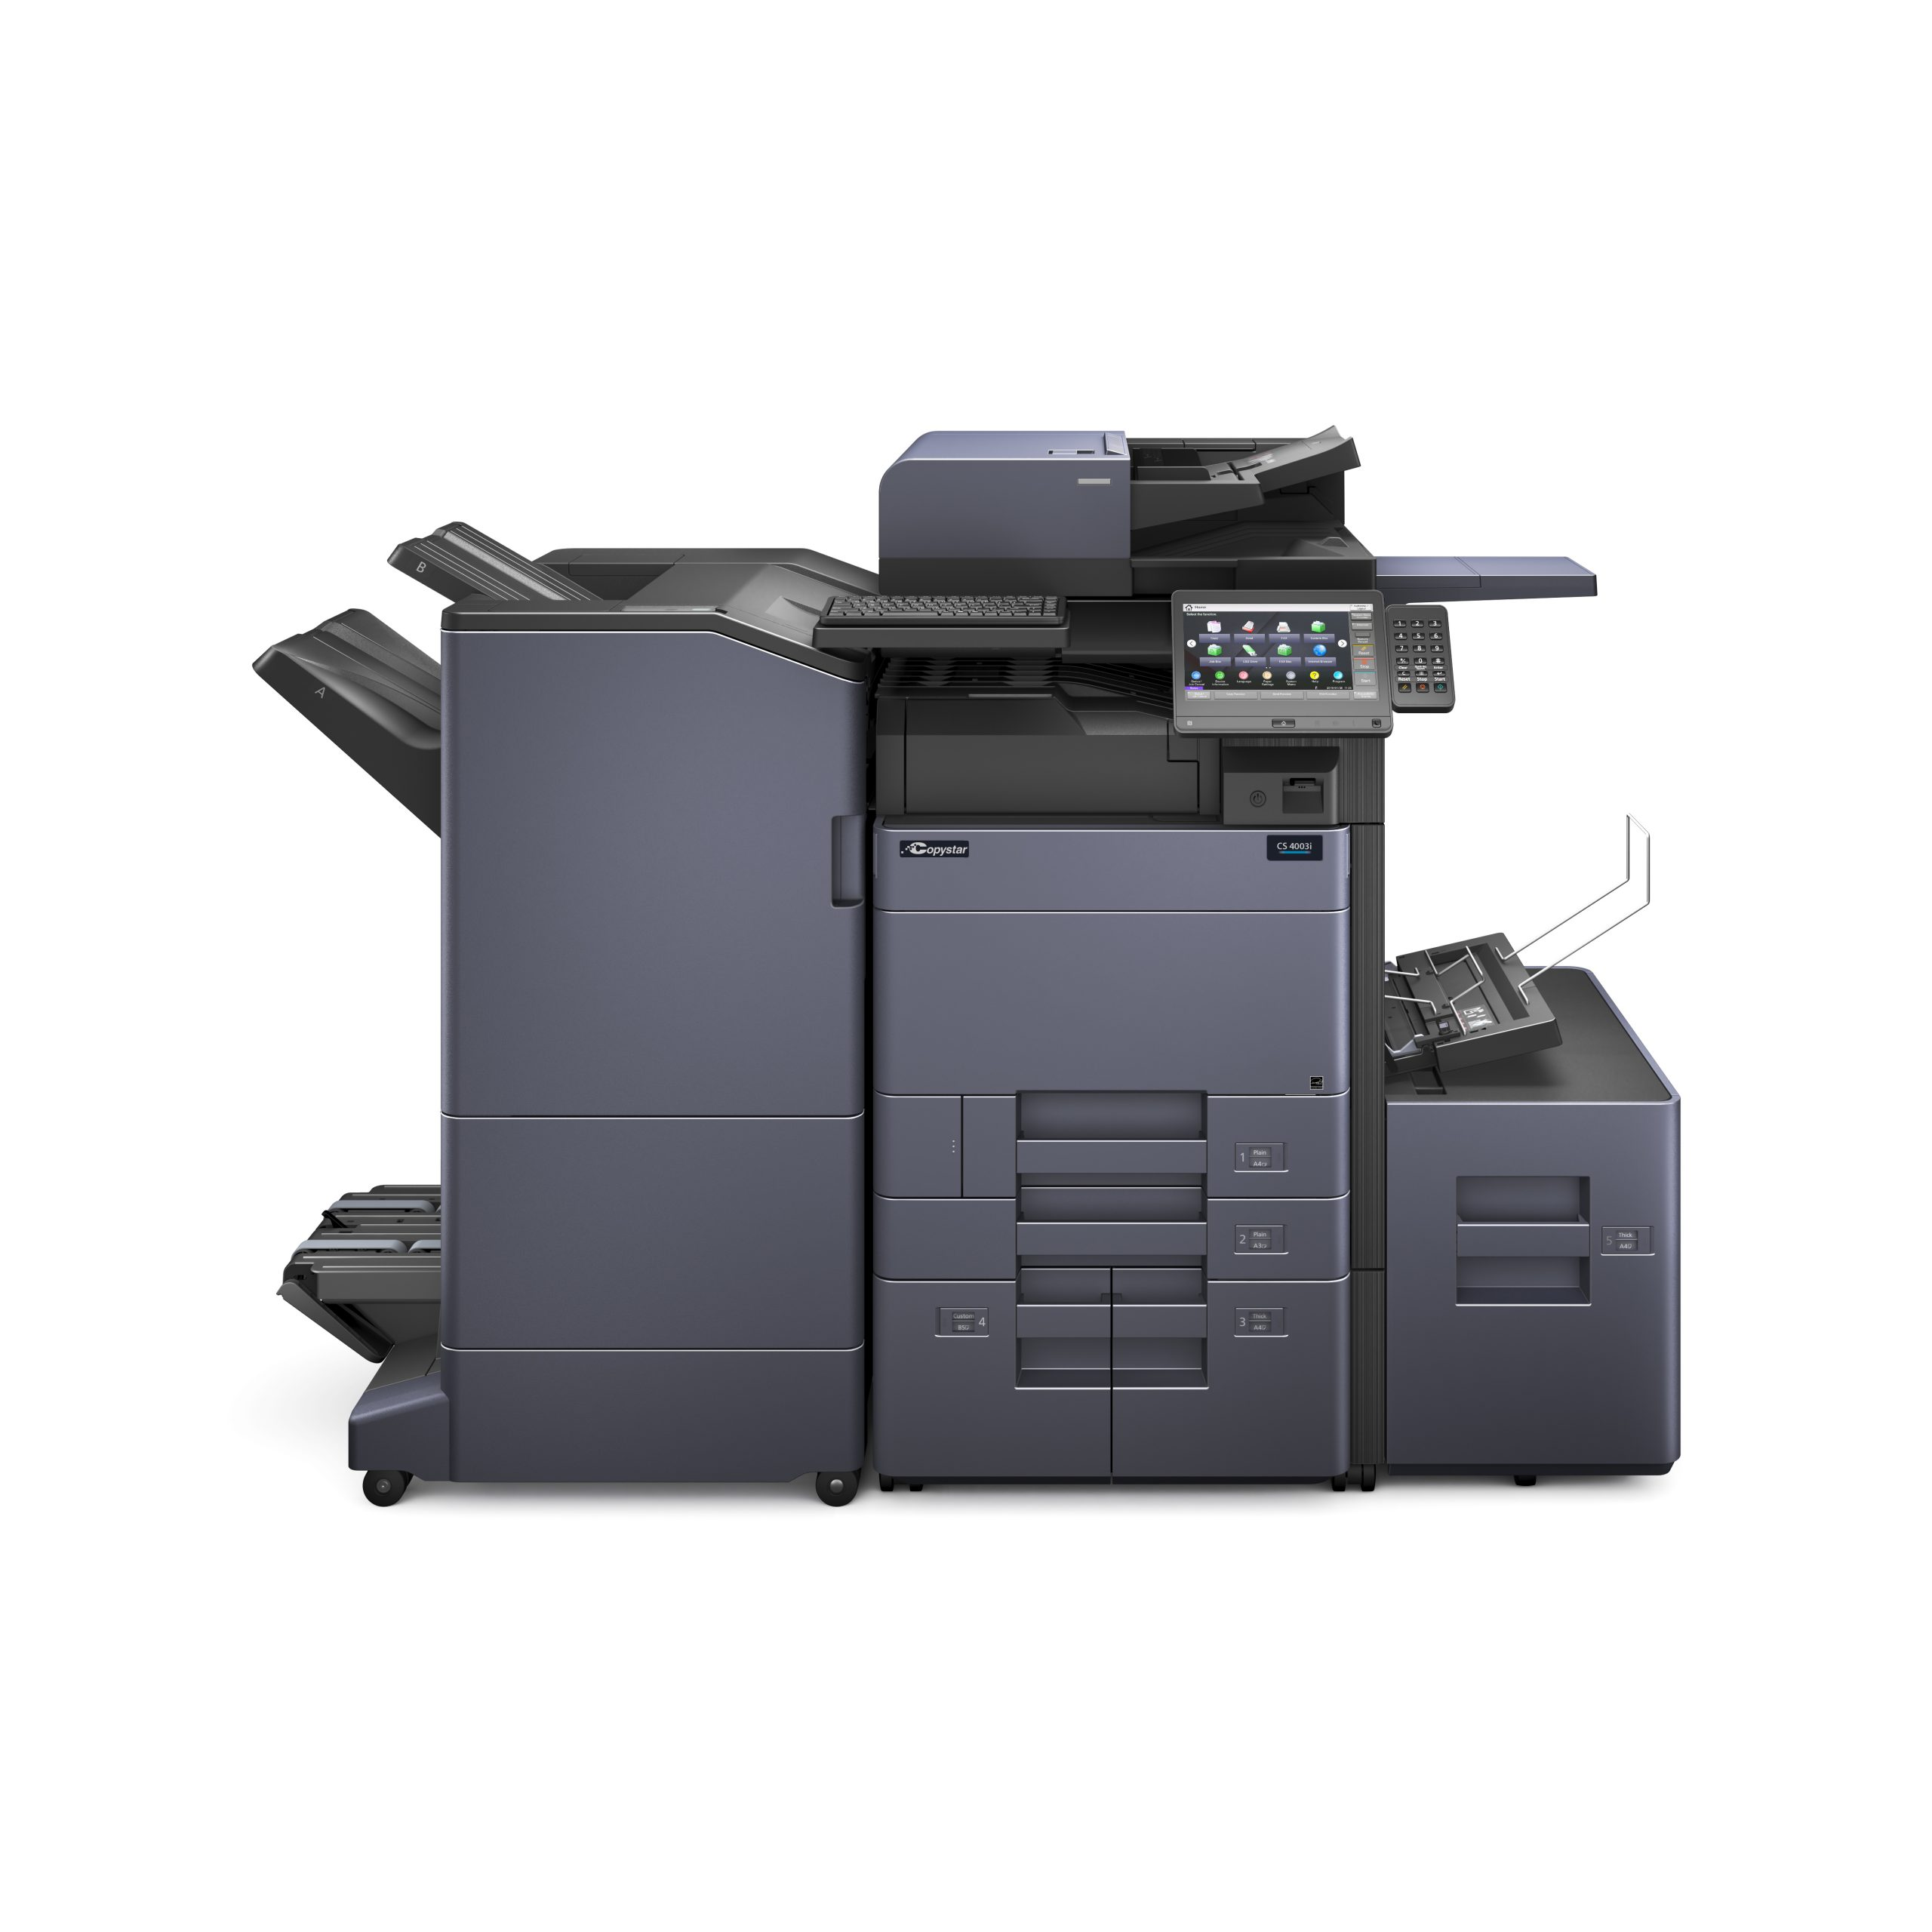 kyocera CS_4003i All In One Copier Sales Minnesota